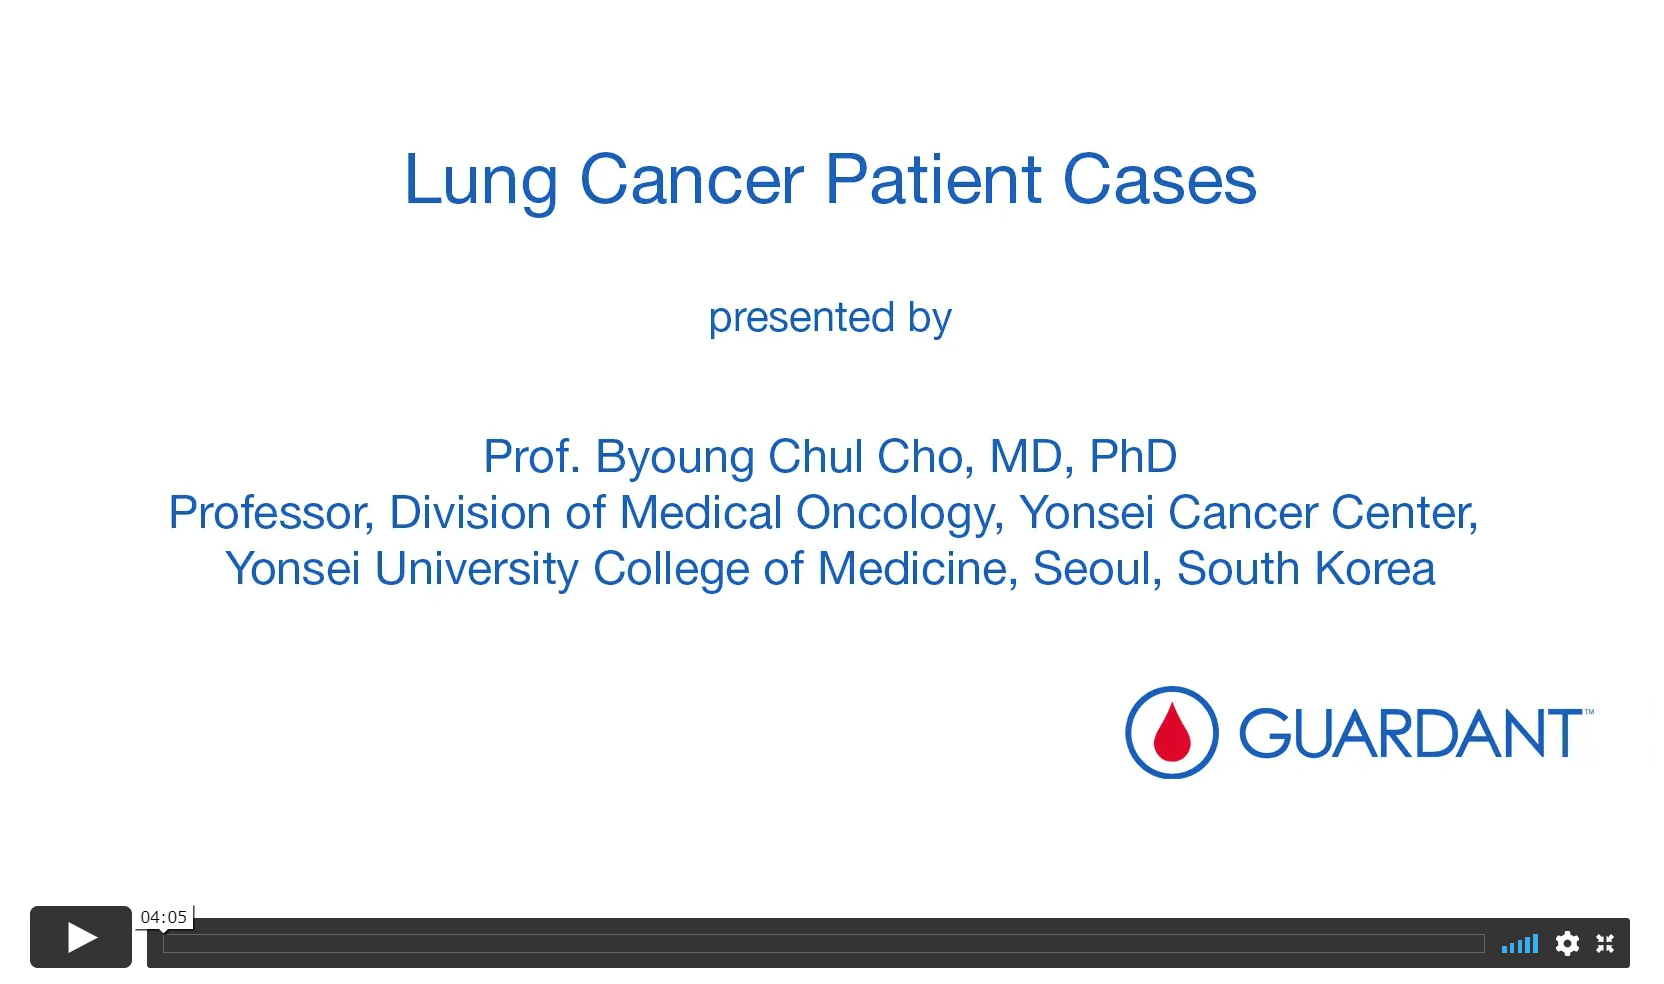 Lung Cancer Patient Cases (Video)